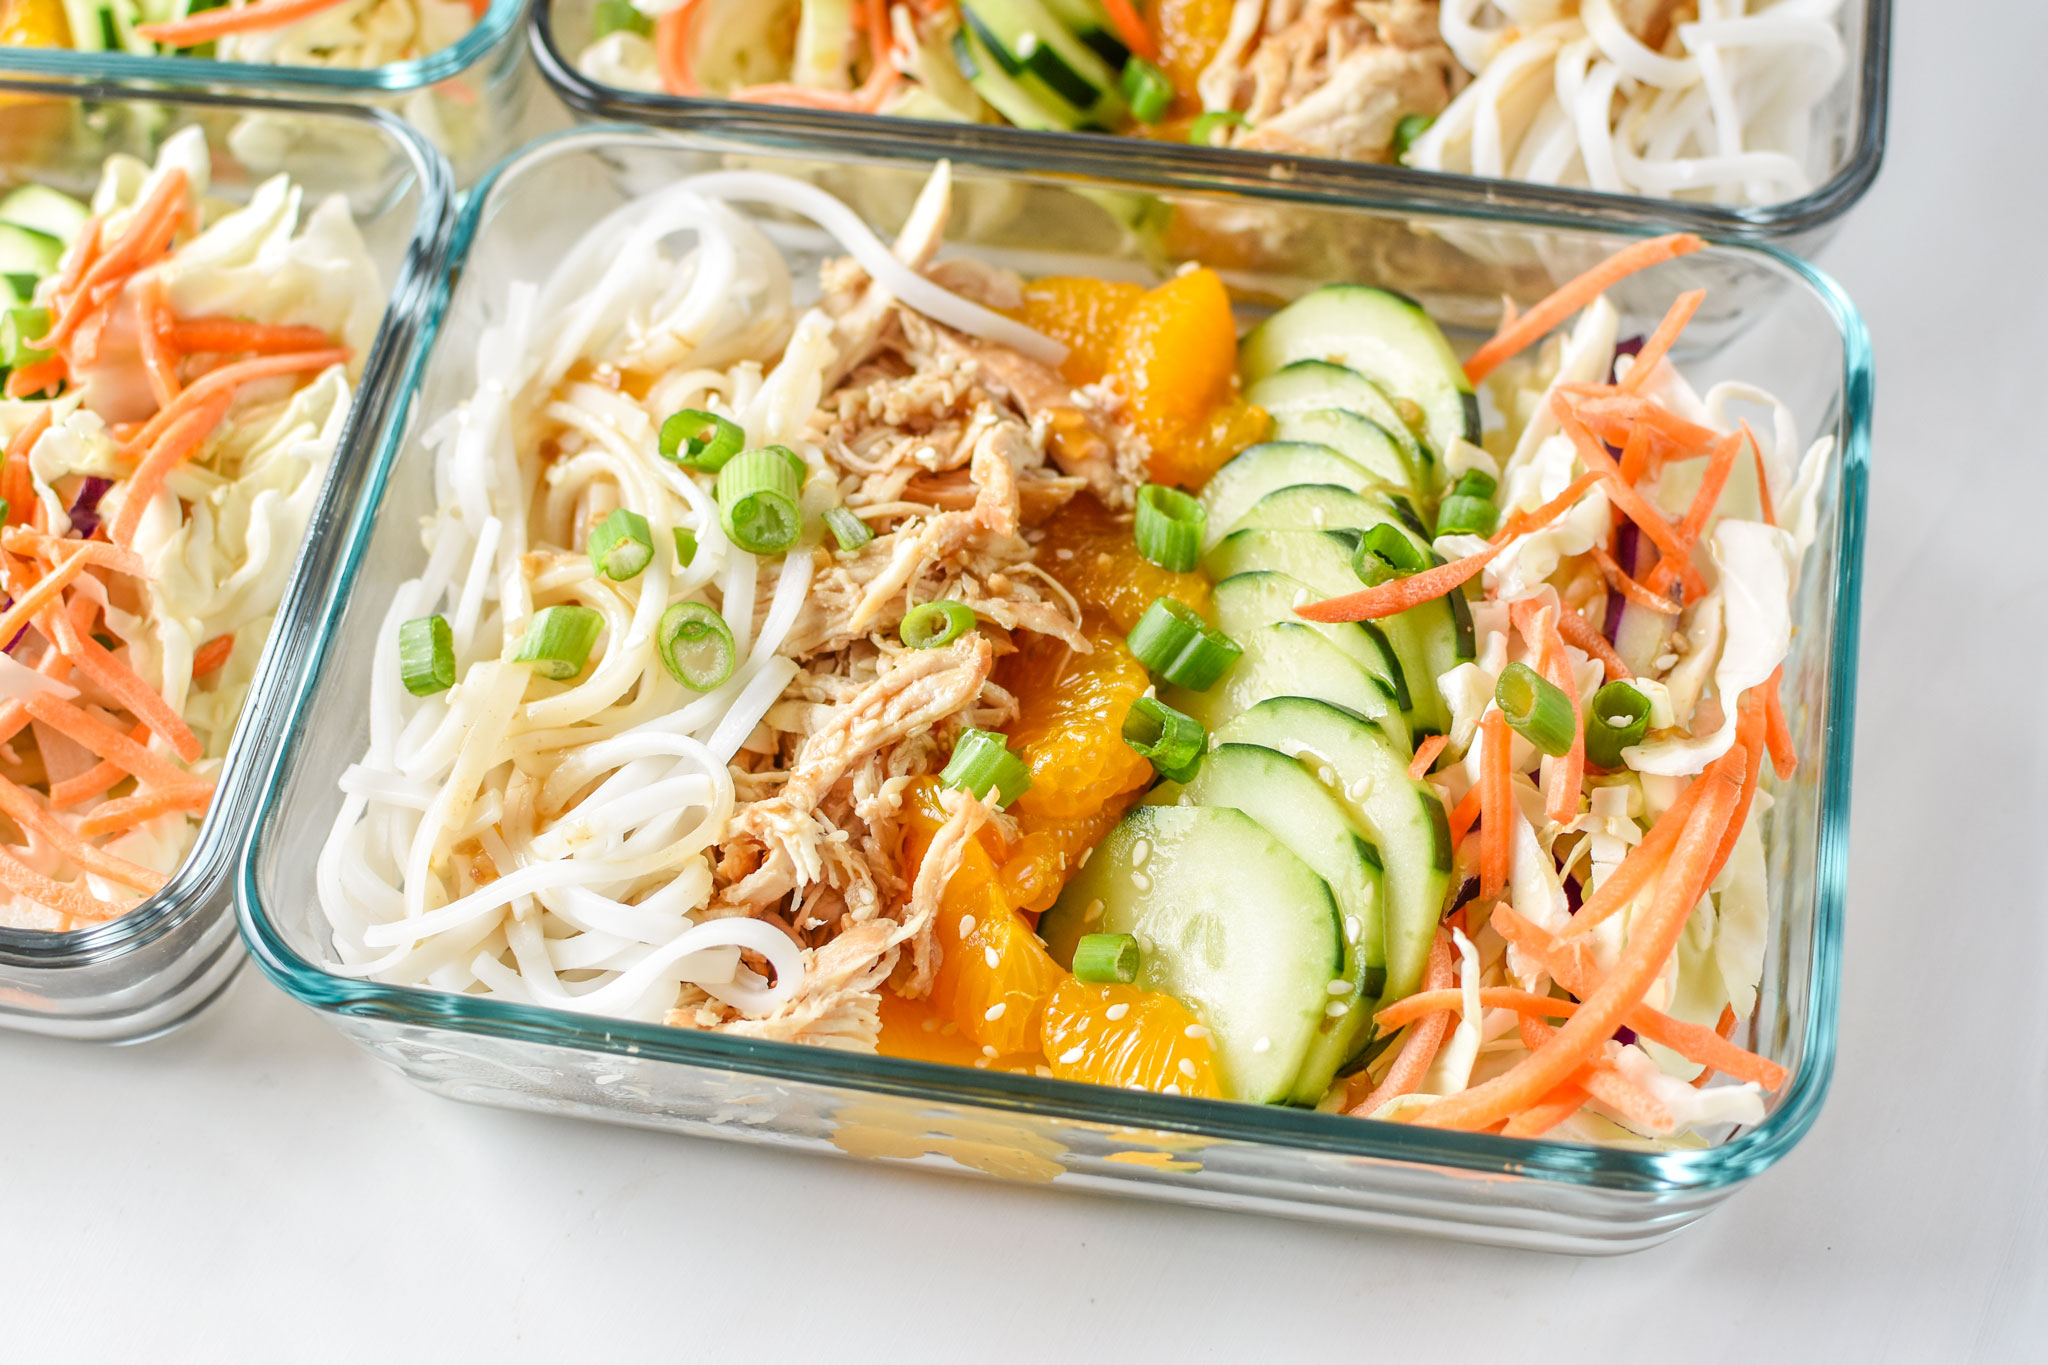 Sesame Chicken Cold Rice Noodle Salad Lunches perfect for meal prep